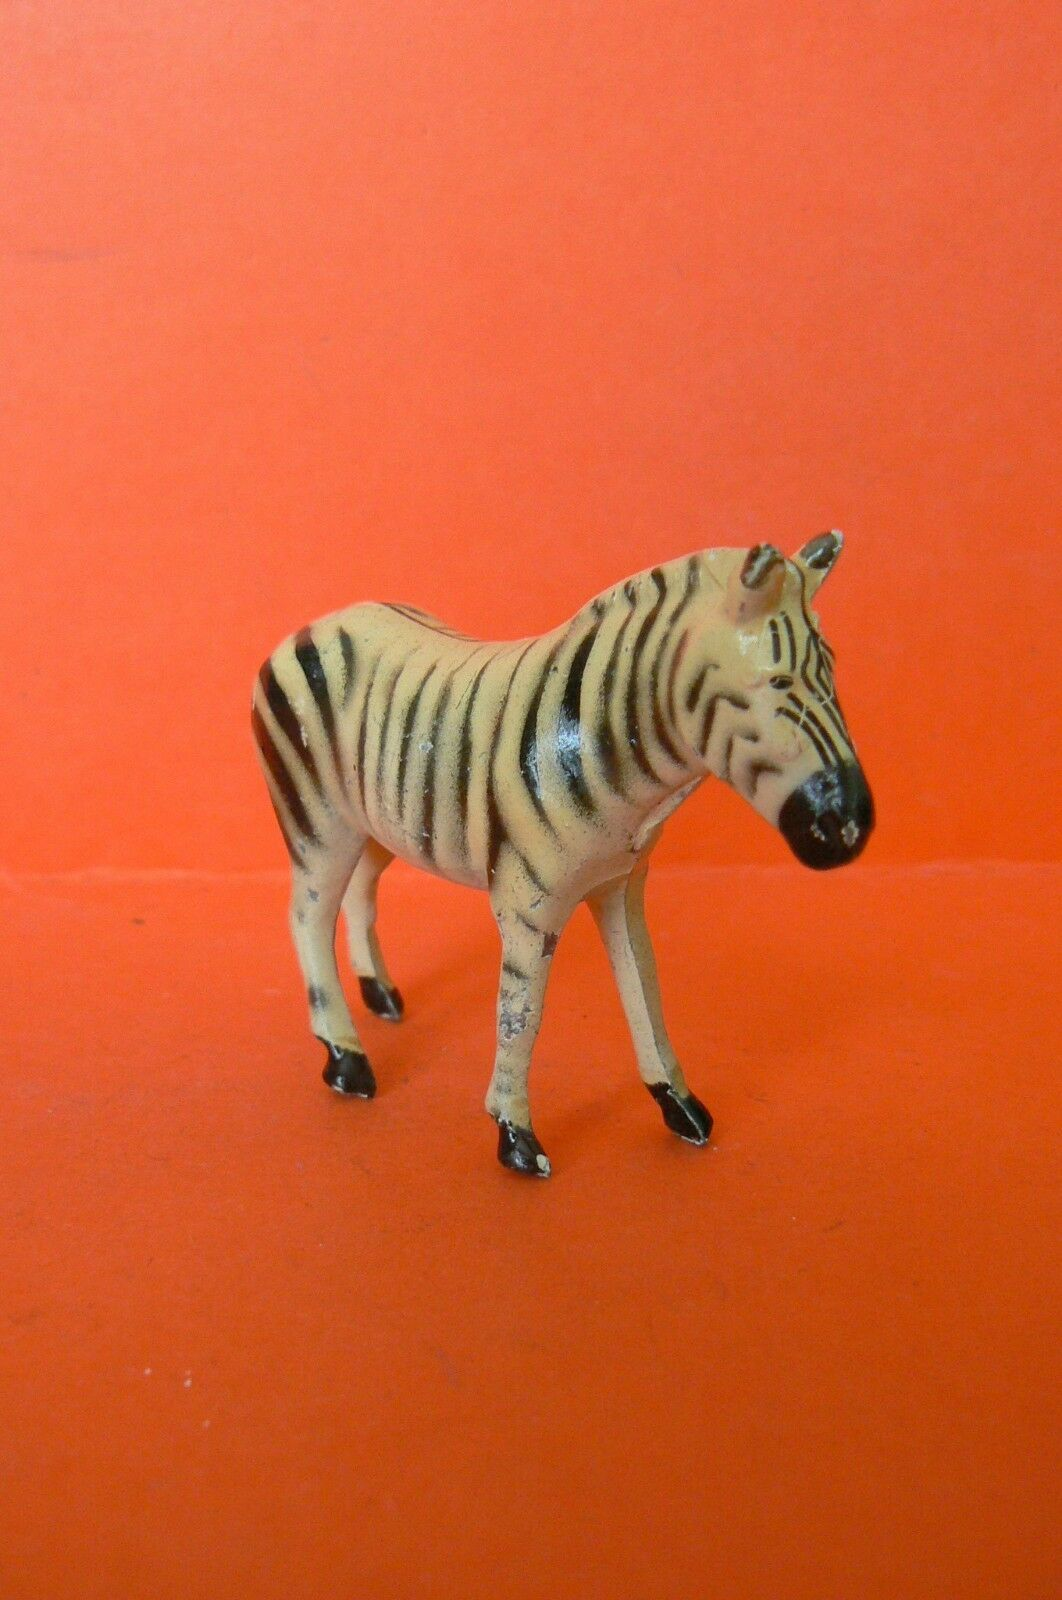 LEAD HOLLOW   BF   CIRCUS OR ANIMALS SAUVAGES   VERY NICE ZEBRA